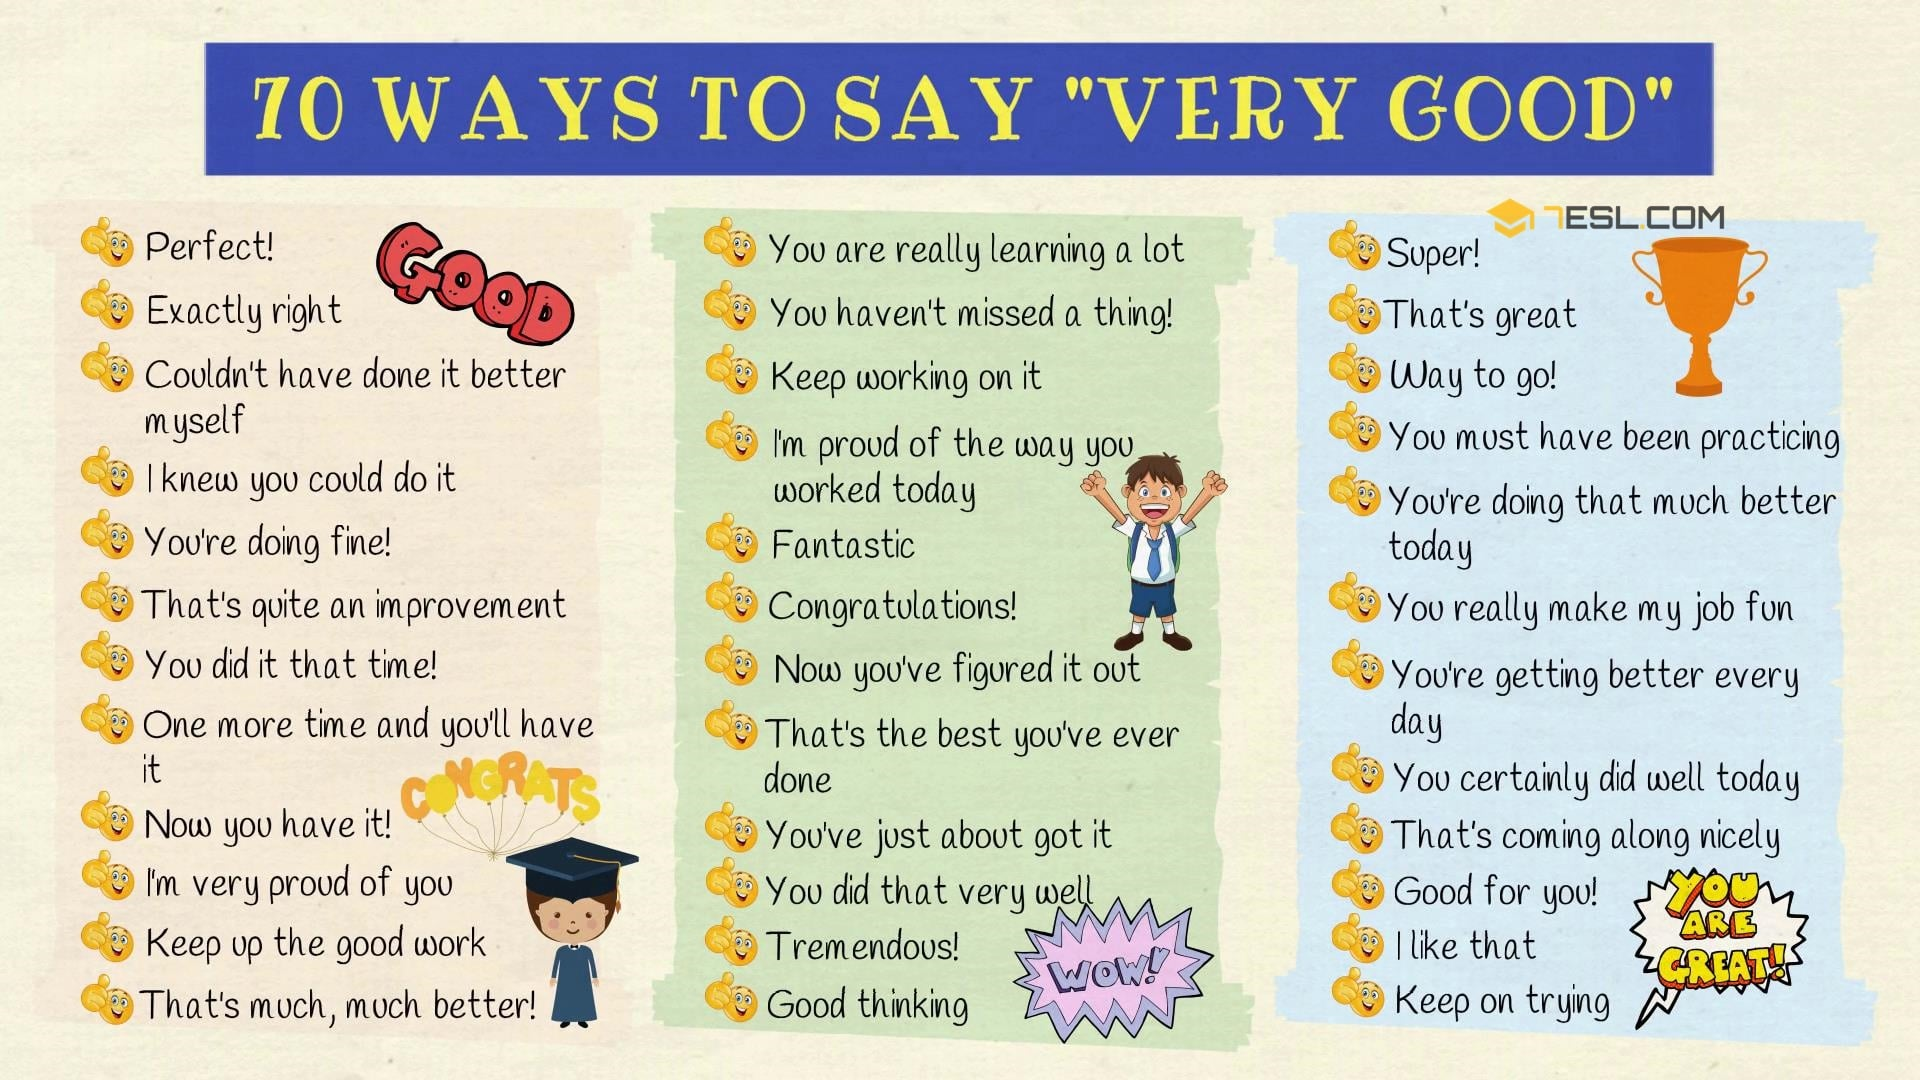 Very Good Synonym: 70+ Ways to Say VERY GOOD in English